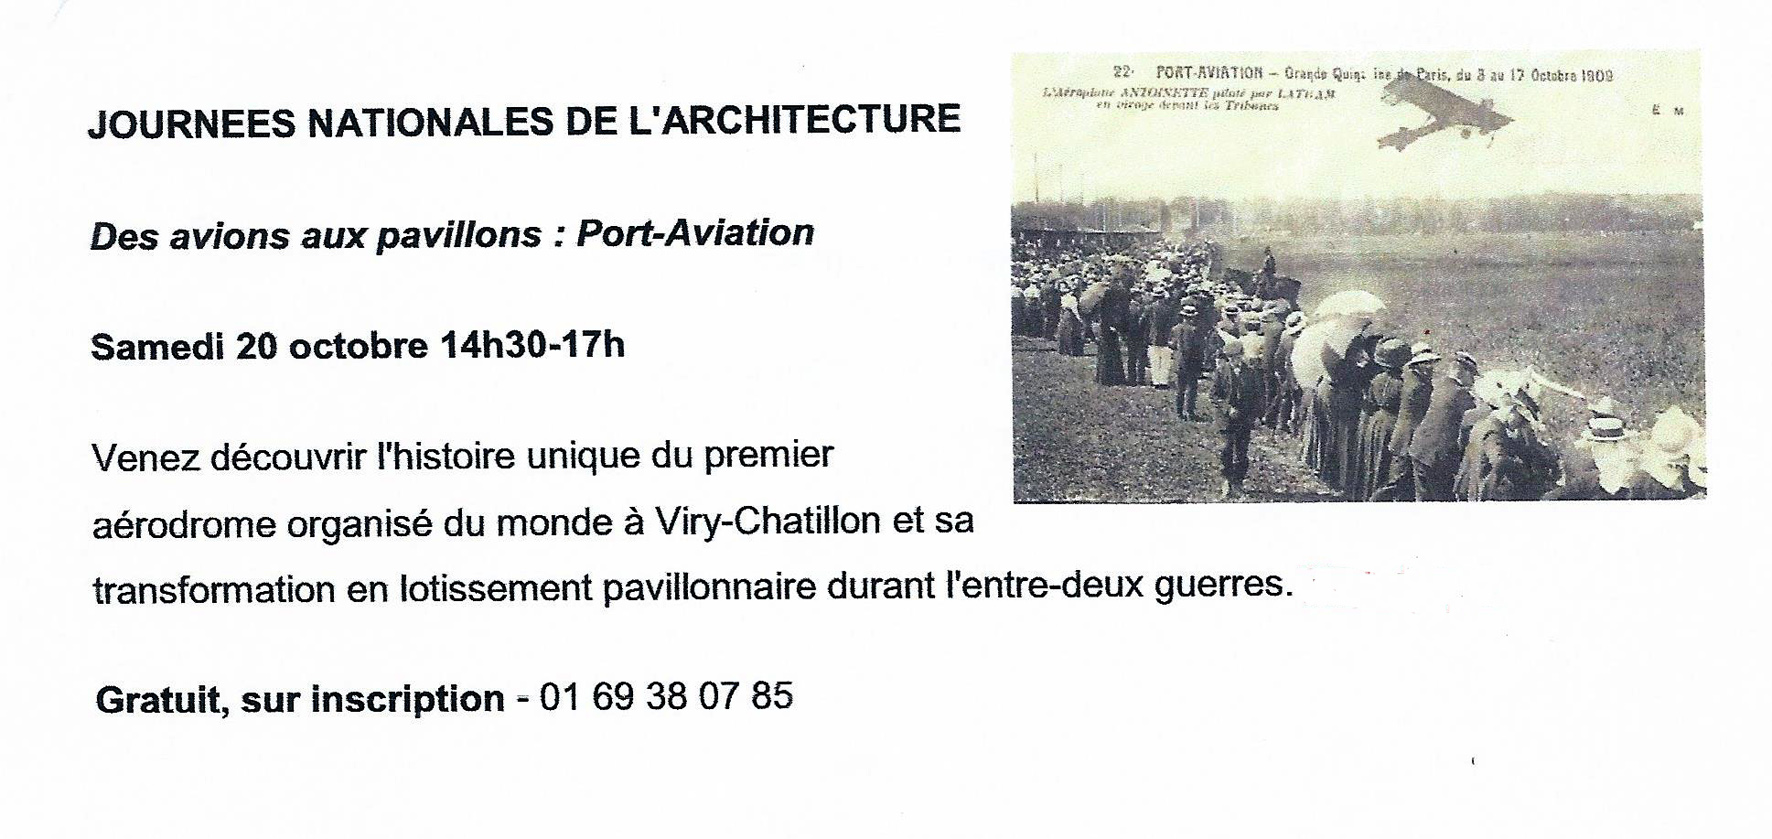 Port-Aviation, Viry-Chatillon